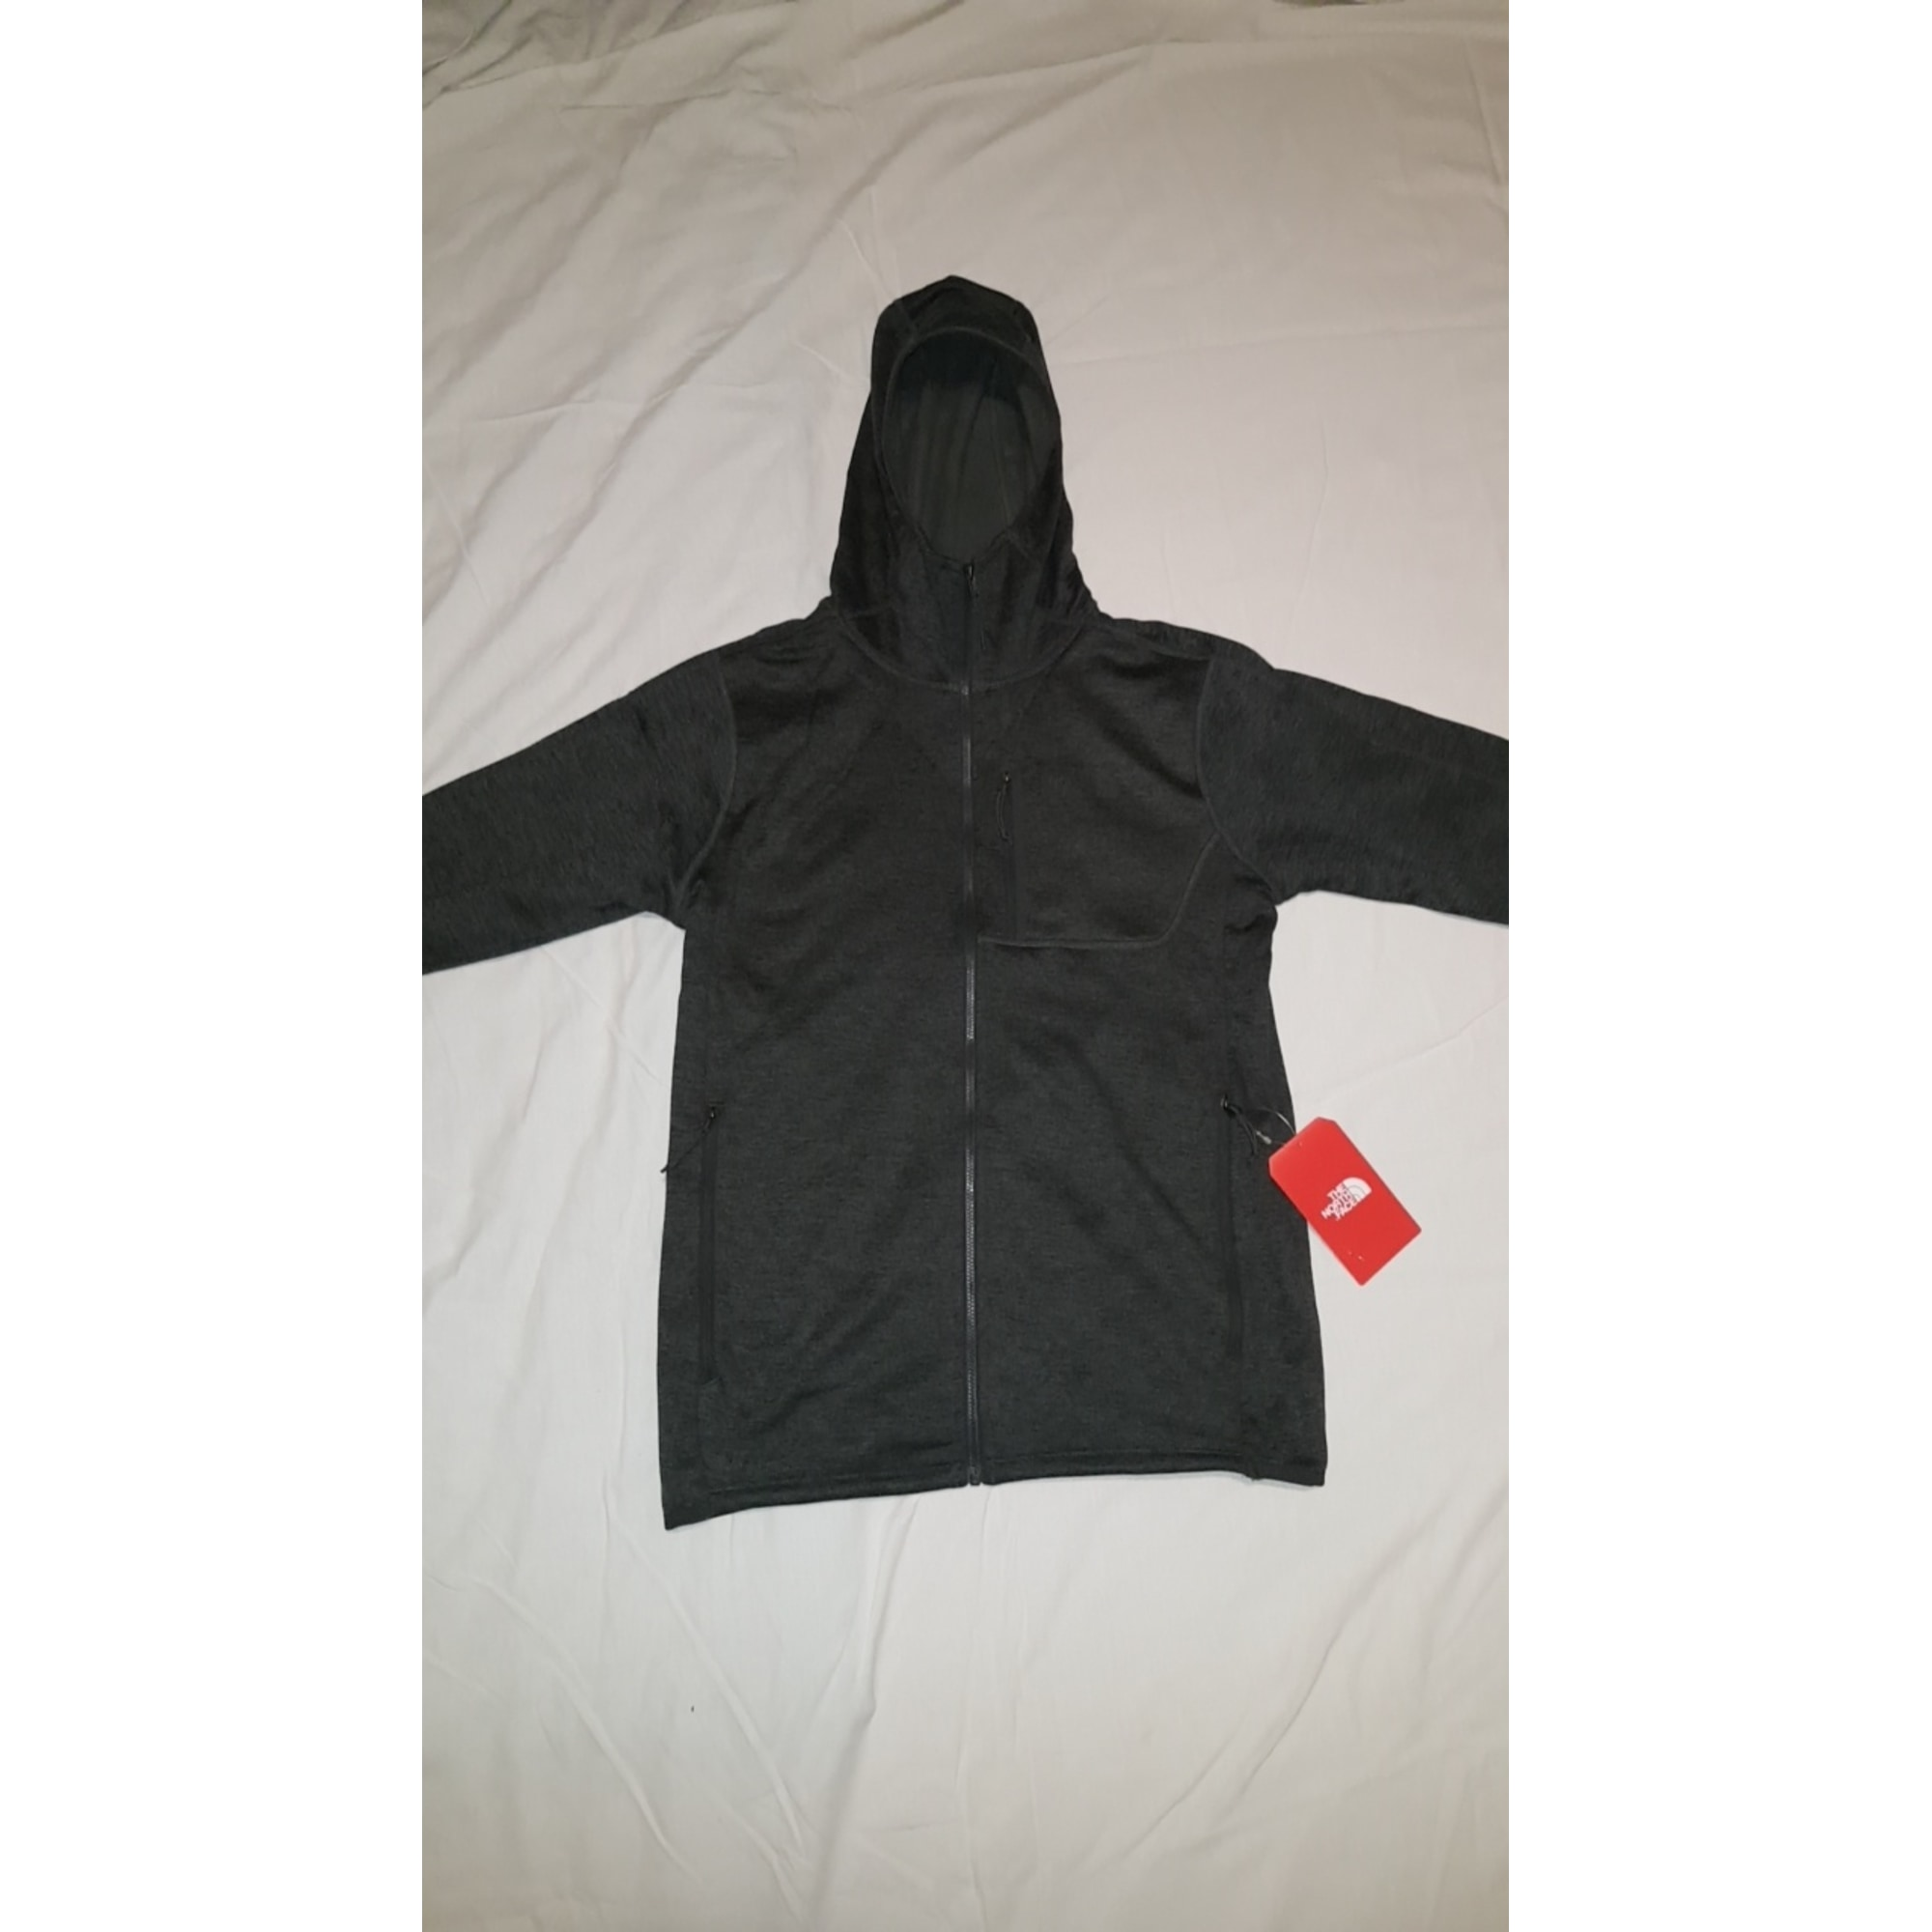 Veste THE NORTH FACE Gris, anthracite